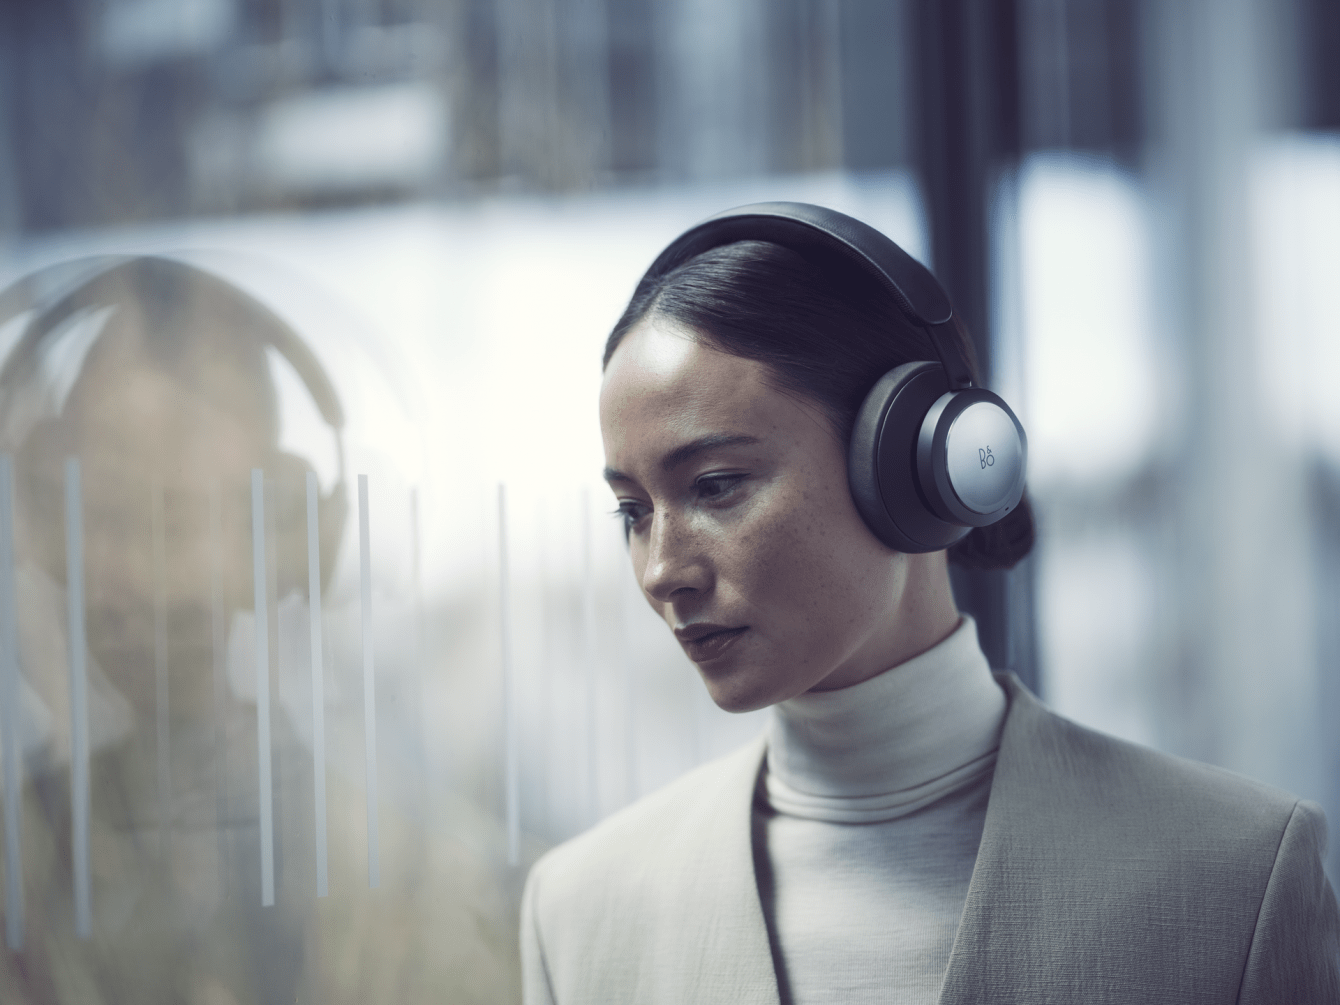 Bang & Olufsen Beoplay Portal: wireless headphones for gaming and more!